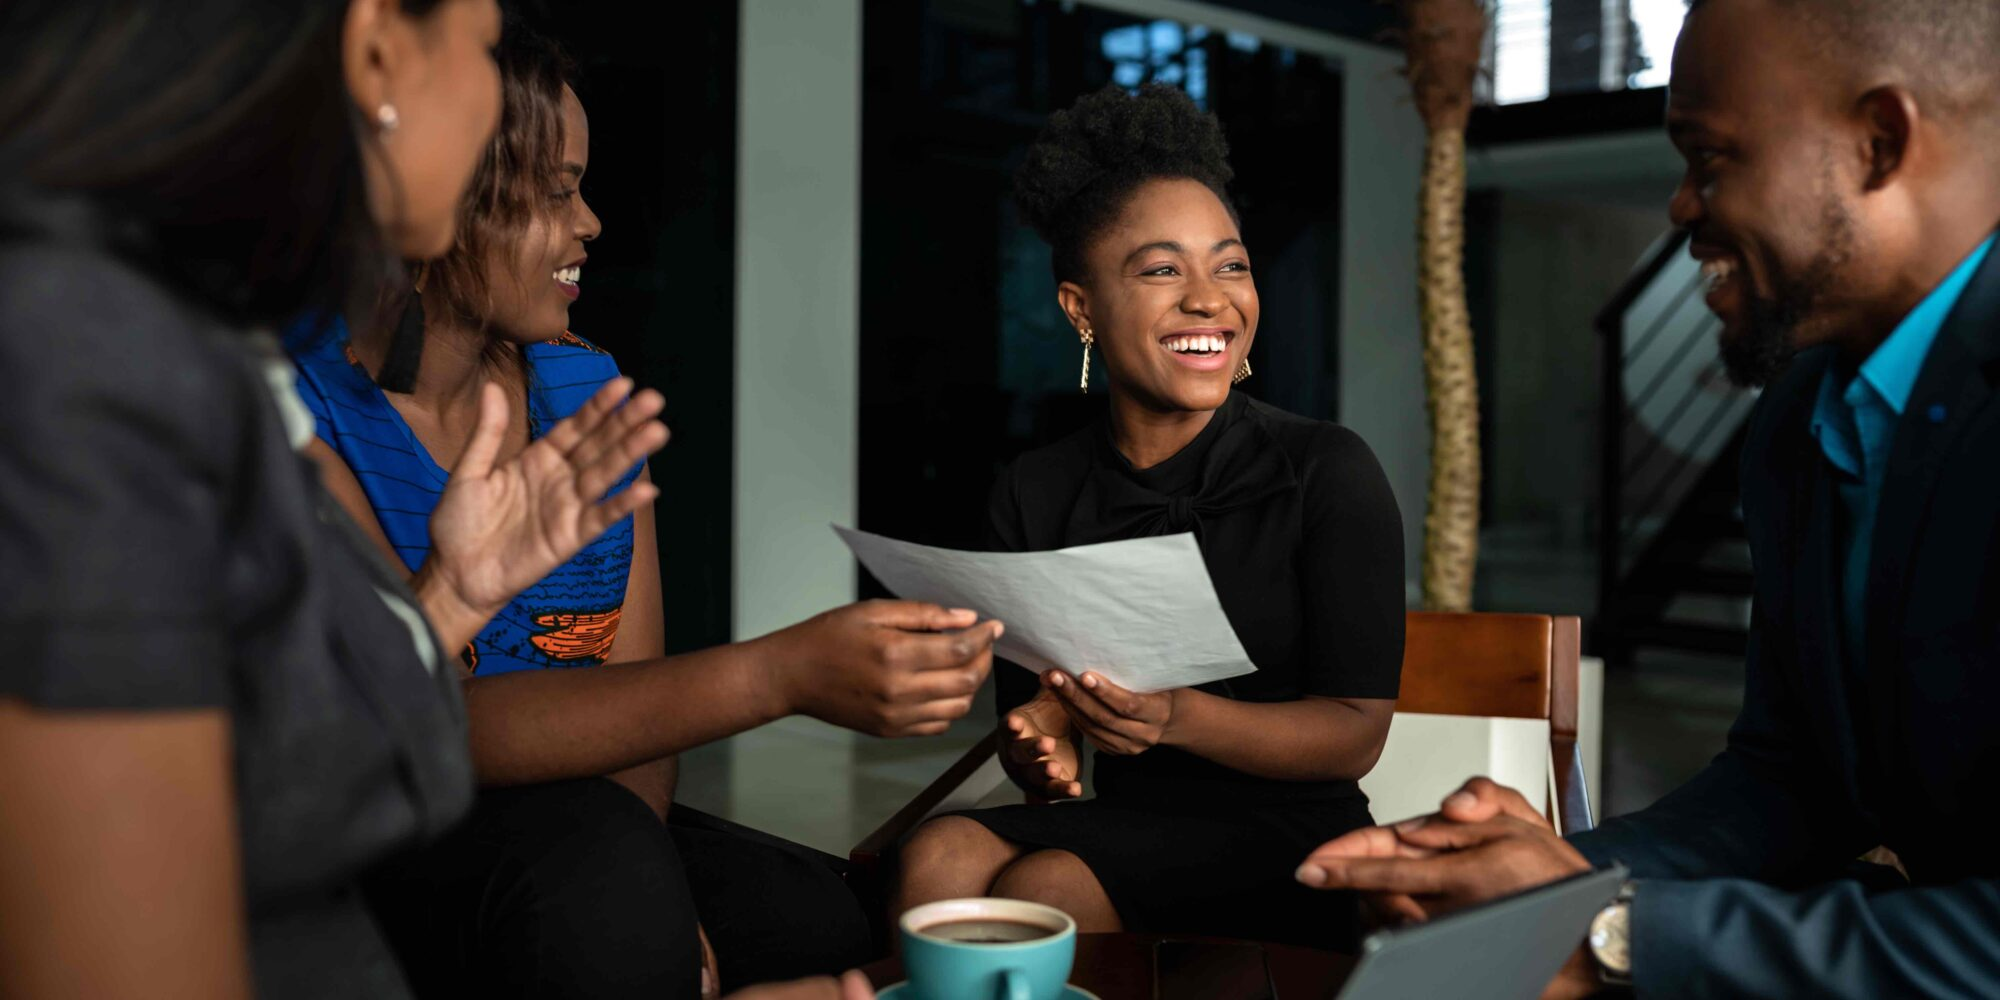 In 2020, Programs To Support BIPOC Brands Proliferated. What Should Be Done Now?